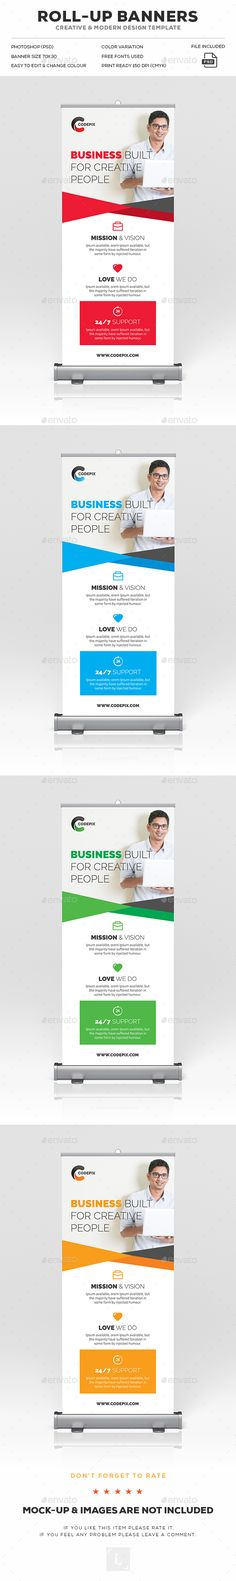 Corporate Roll-Up Banner Ads Design Template - Signage Print Template PSD. Download here: https://graphicriver.net/item/corporate-rollup-banner/17029633?s_rank=68&ref=yinkira